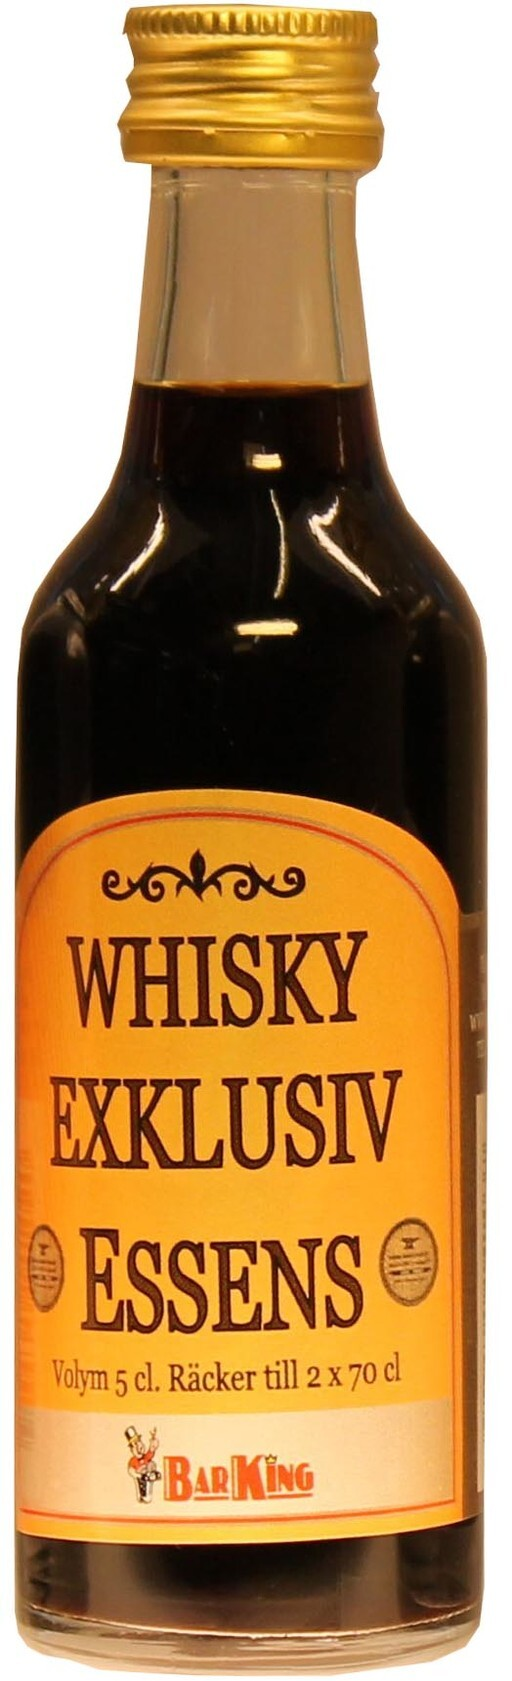 Whisky Exklusive 5 cl